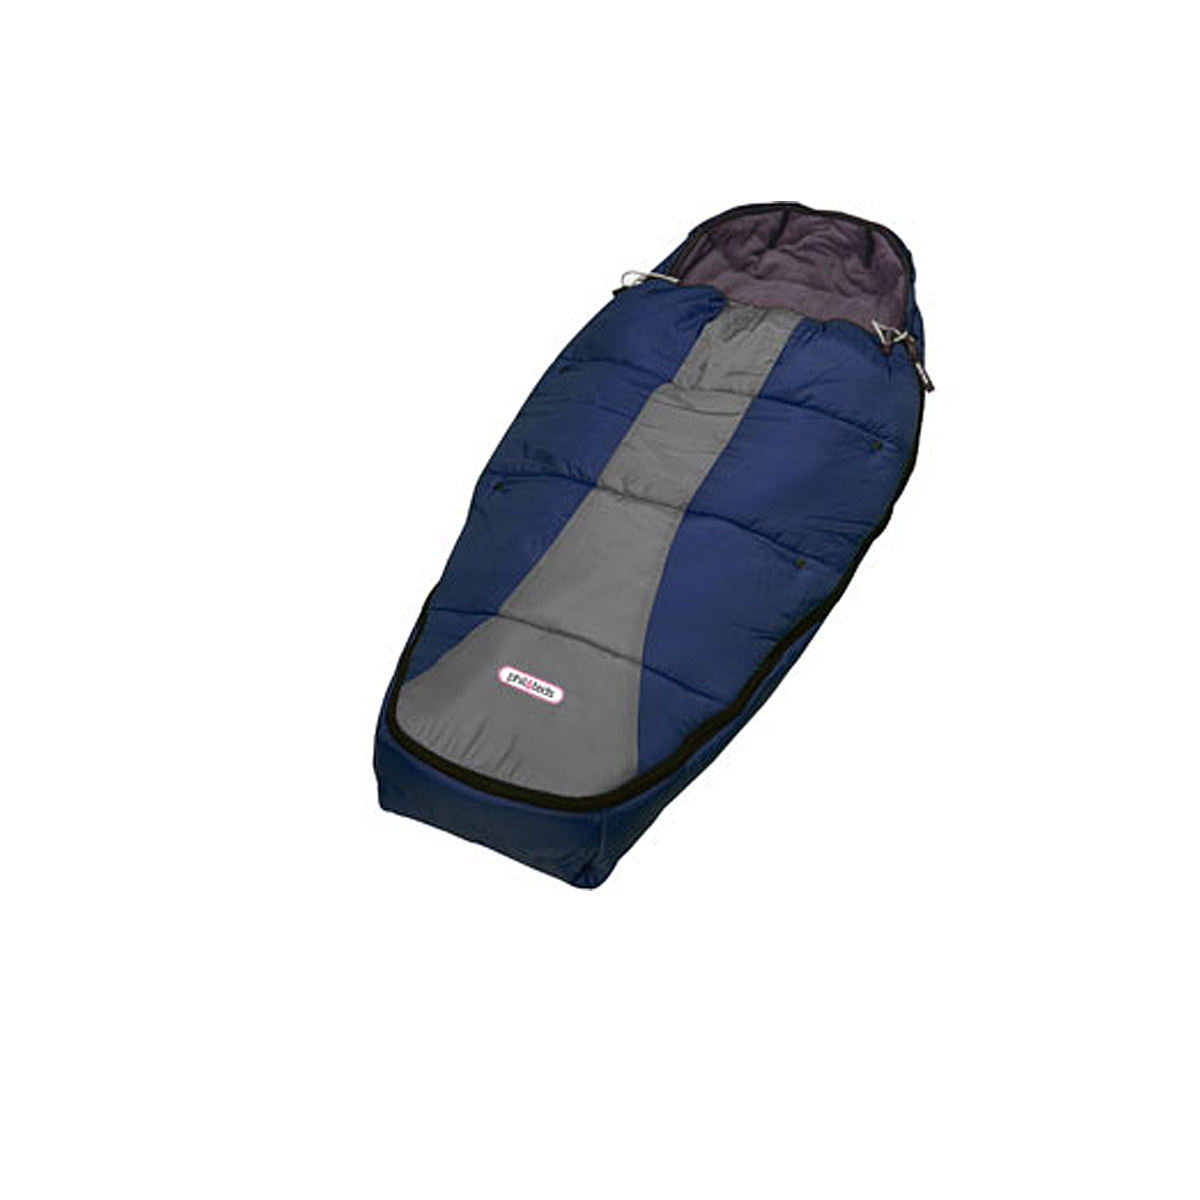 Sleeping bag NAVY-CHARCOAL-30